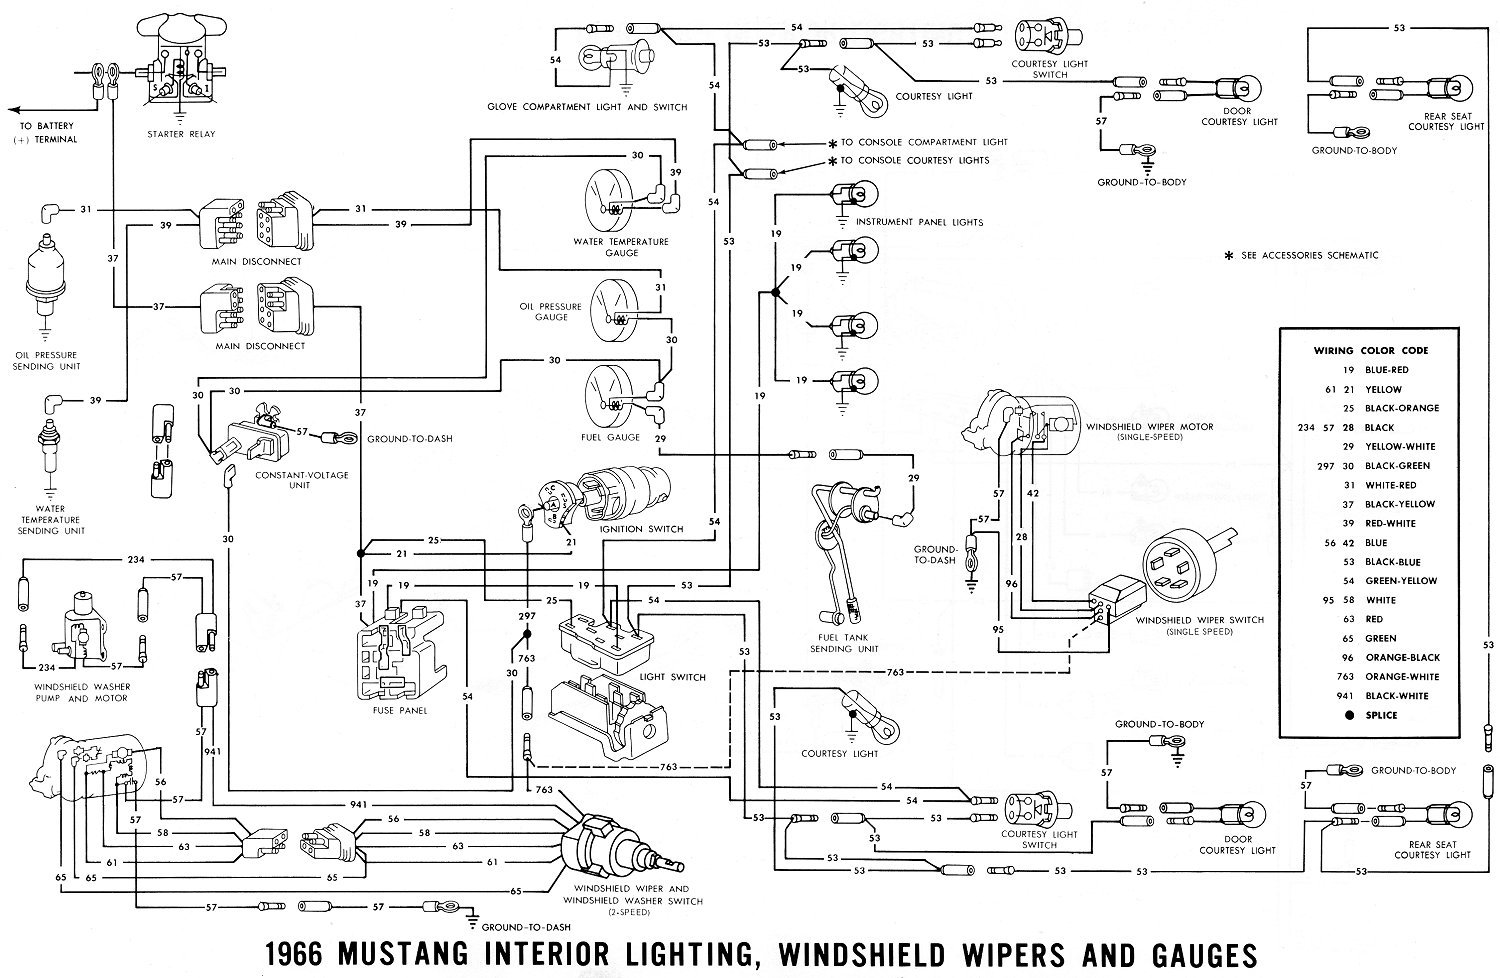 🏆 [DIAGRAM in Pictures Database] 68 Mustang Fastback Wiring Diagram Just  Download or Read Wiring Diagram - PATRICE.MICHELLE.KRIPKE-MODELS.ONYXUM.COMComplete Diagram Picture Database - Onyxum.com